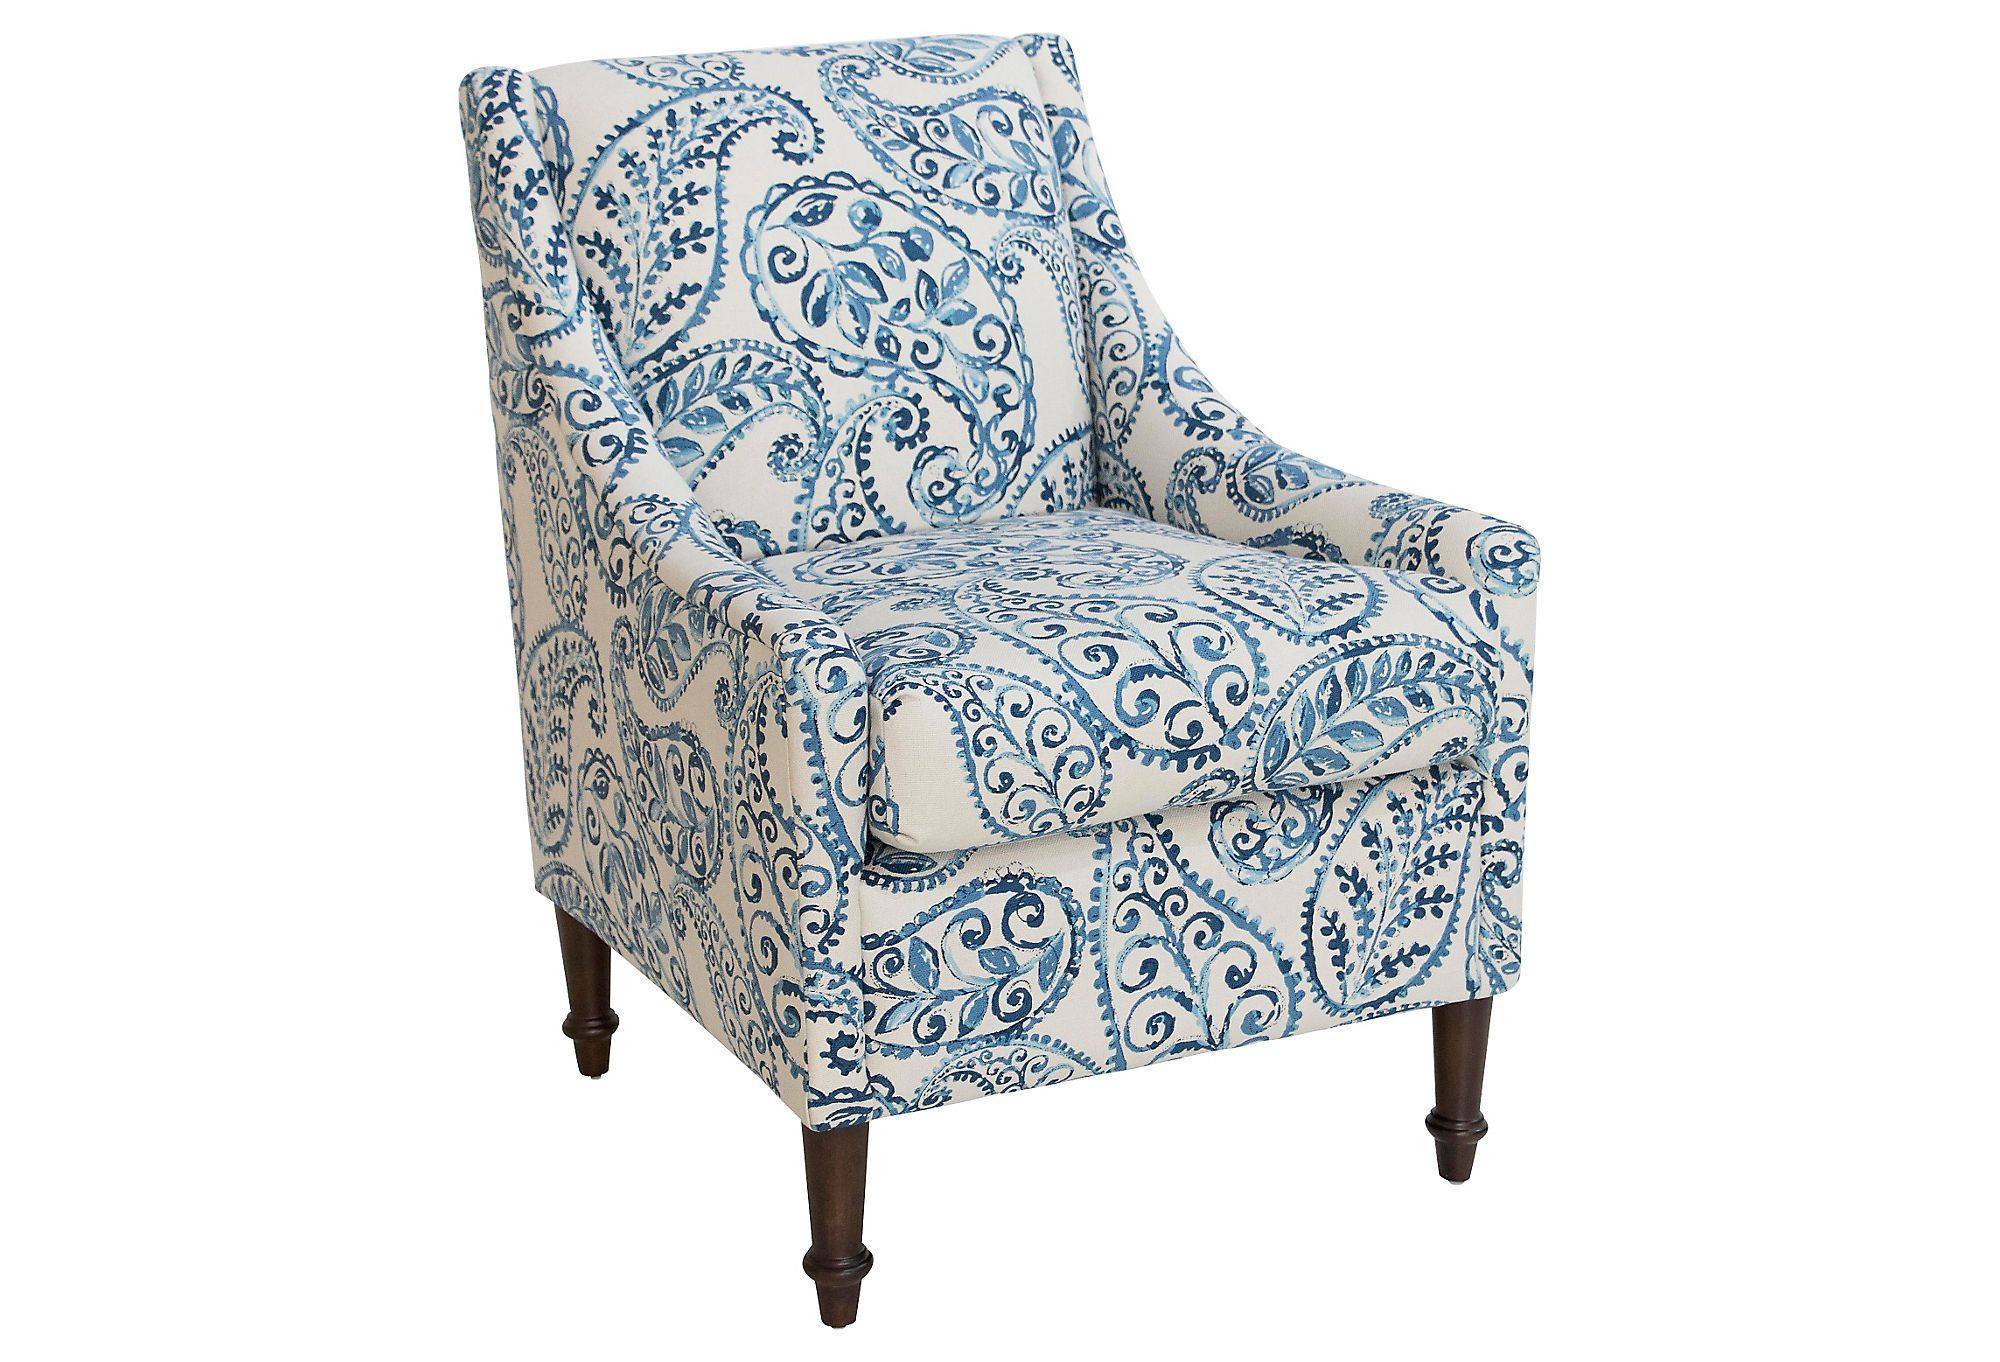 Best Product Sfm21905 Image 1 Fullzoom Blue Accent Chairs 400 x 300